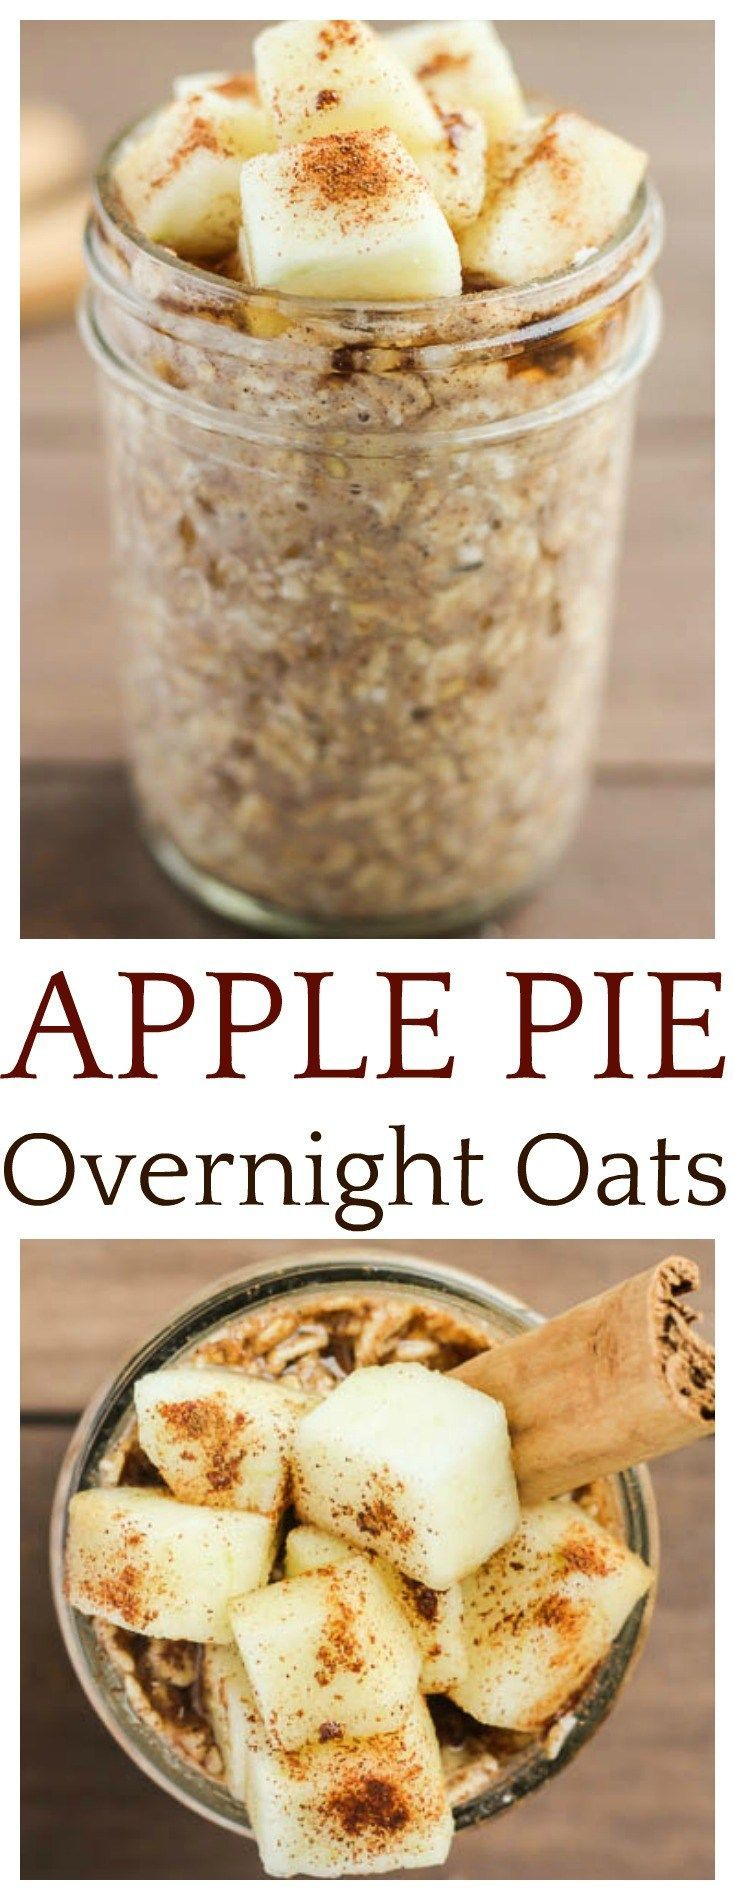 If you love apple cinnamon oatmeal, you will love these Apple Pie Overnight Oats! They are a quick and delicious make ahead breakfast recipe that is perfect for busy mornings!